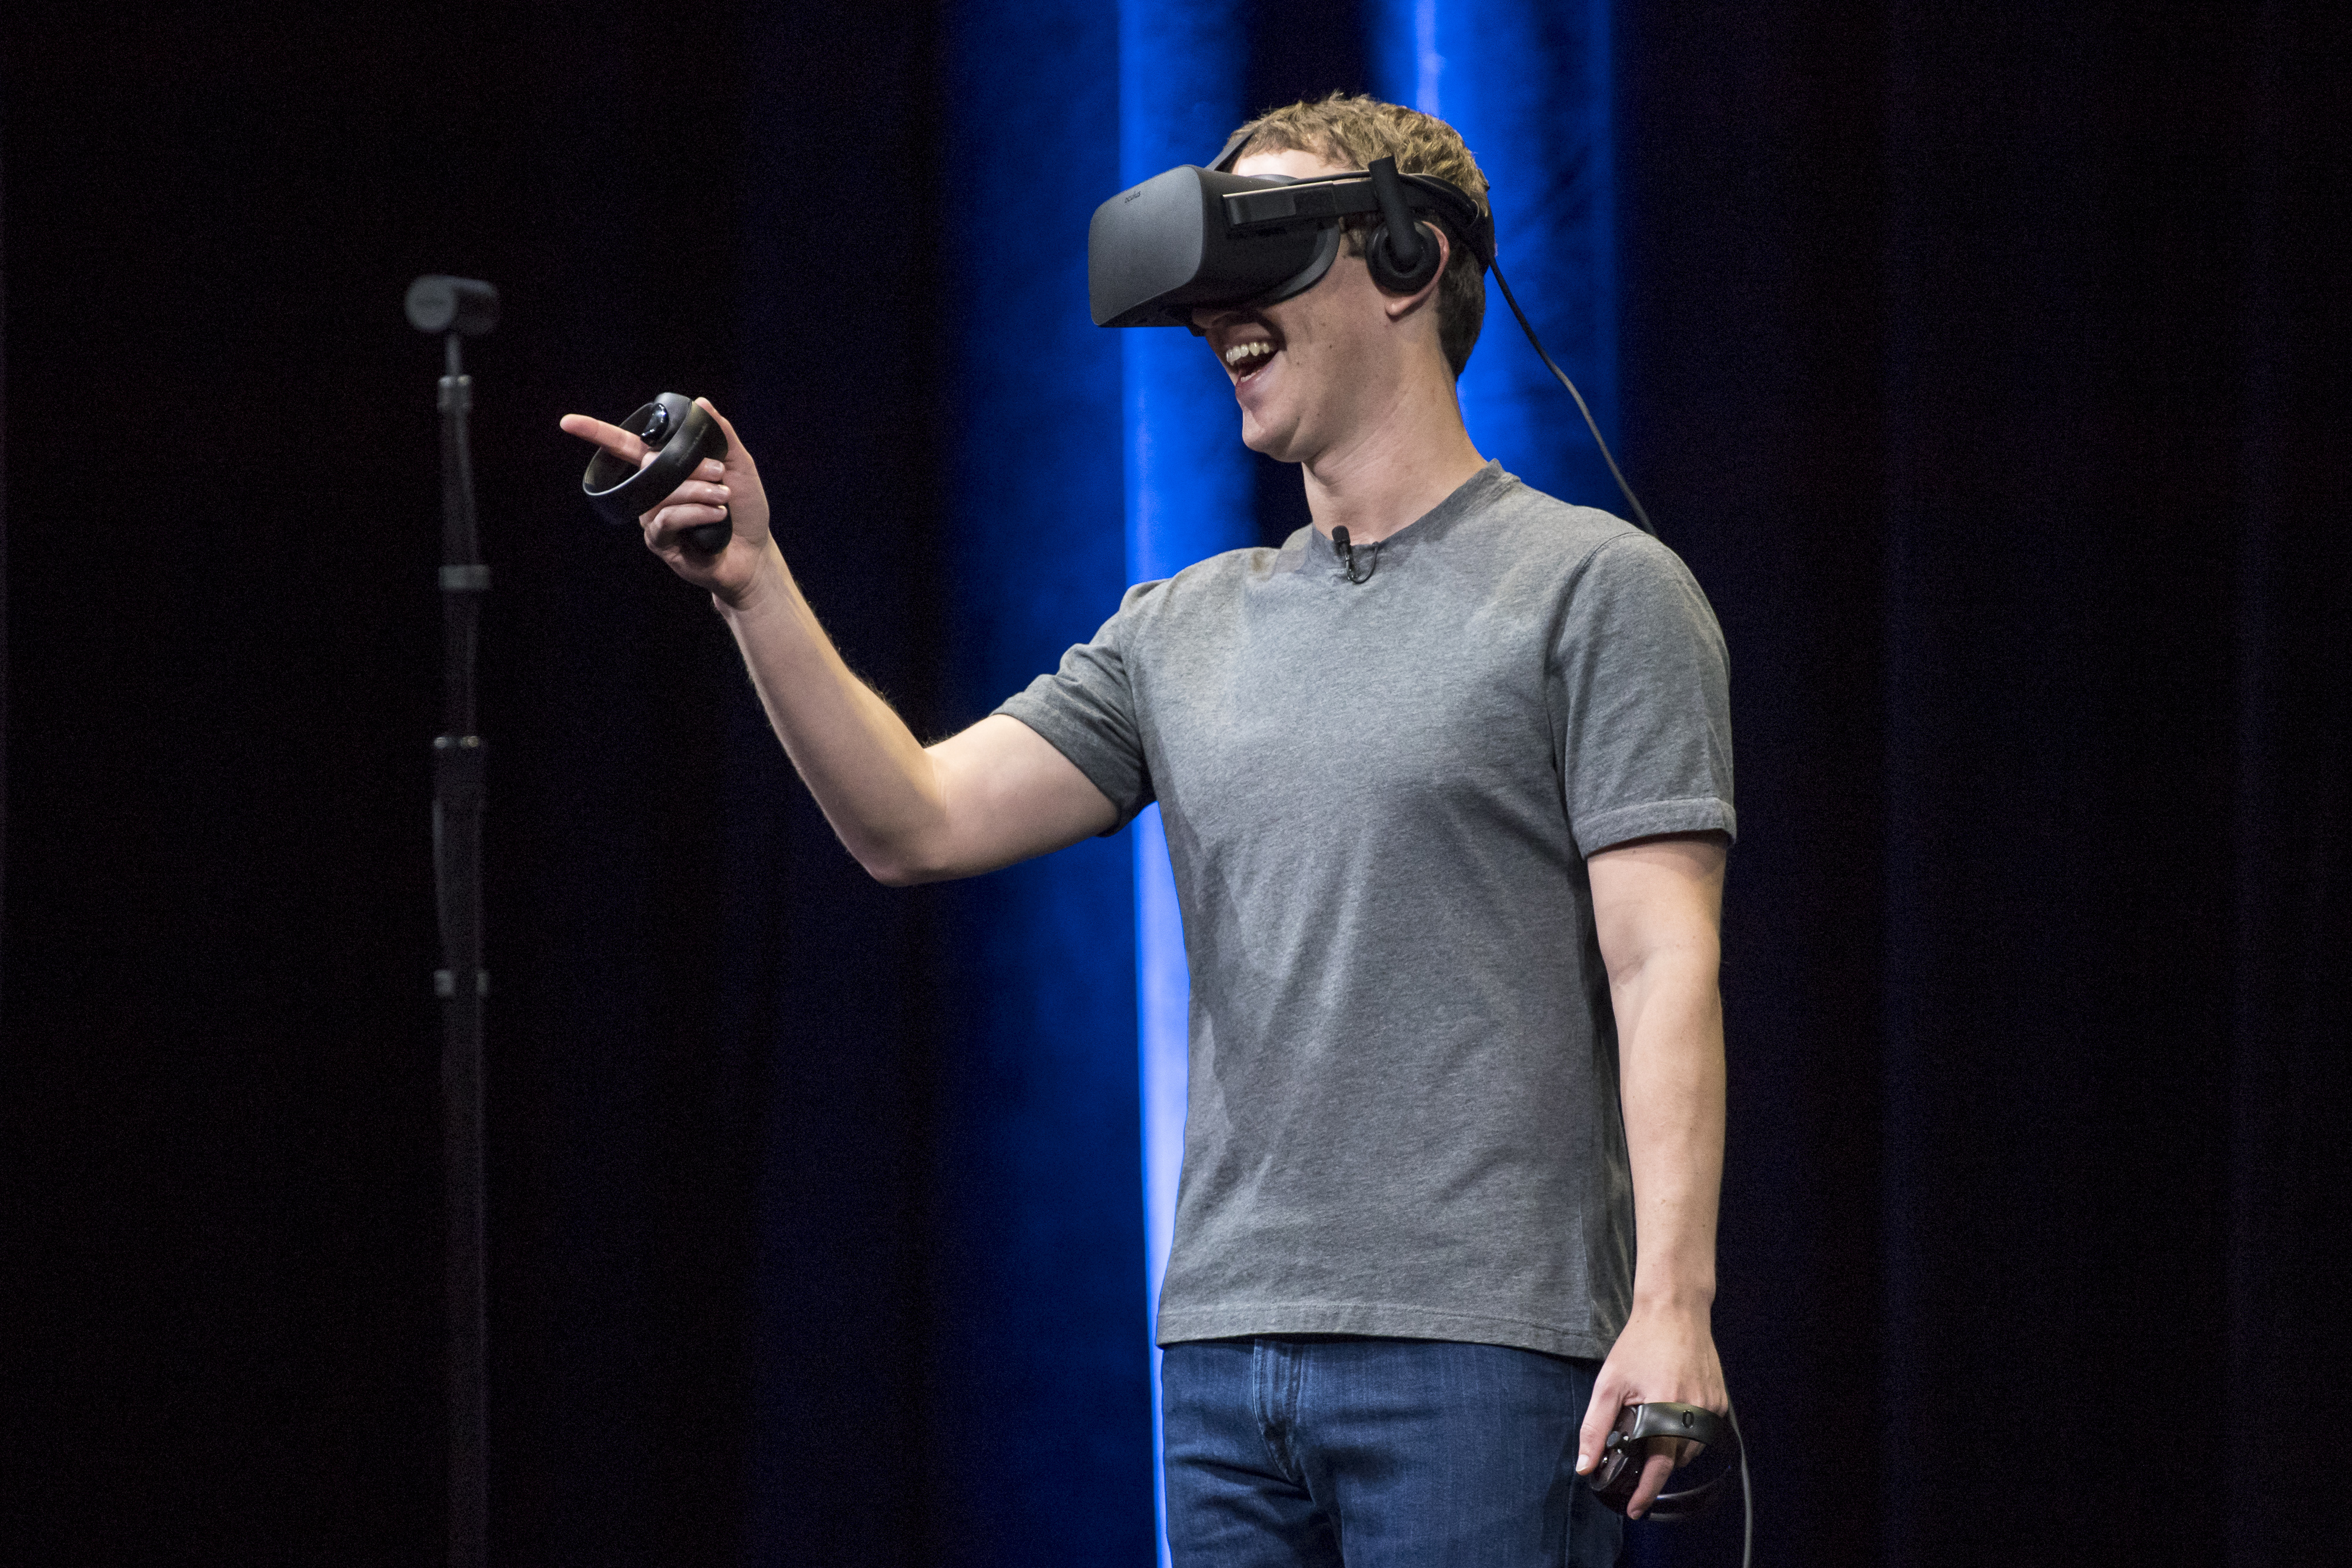 Facebook VR headset Oculus Quest's review